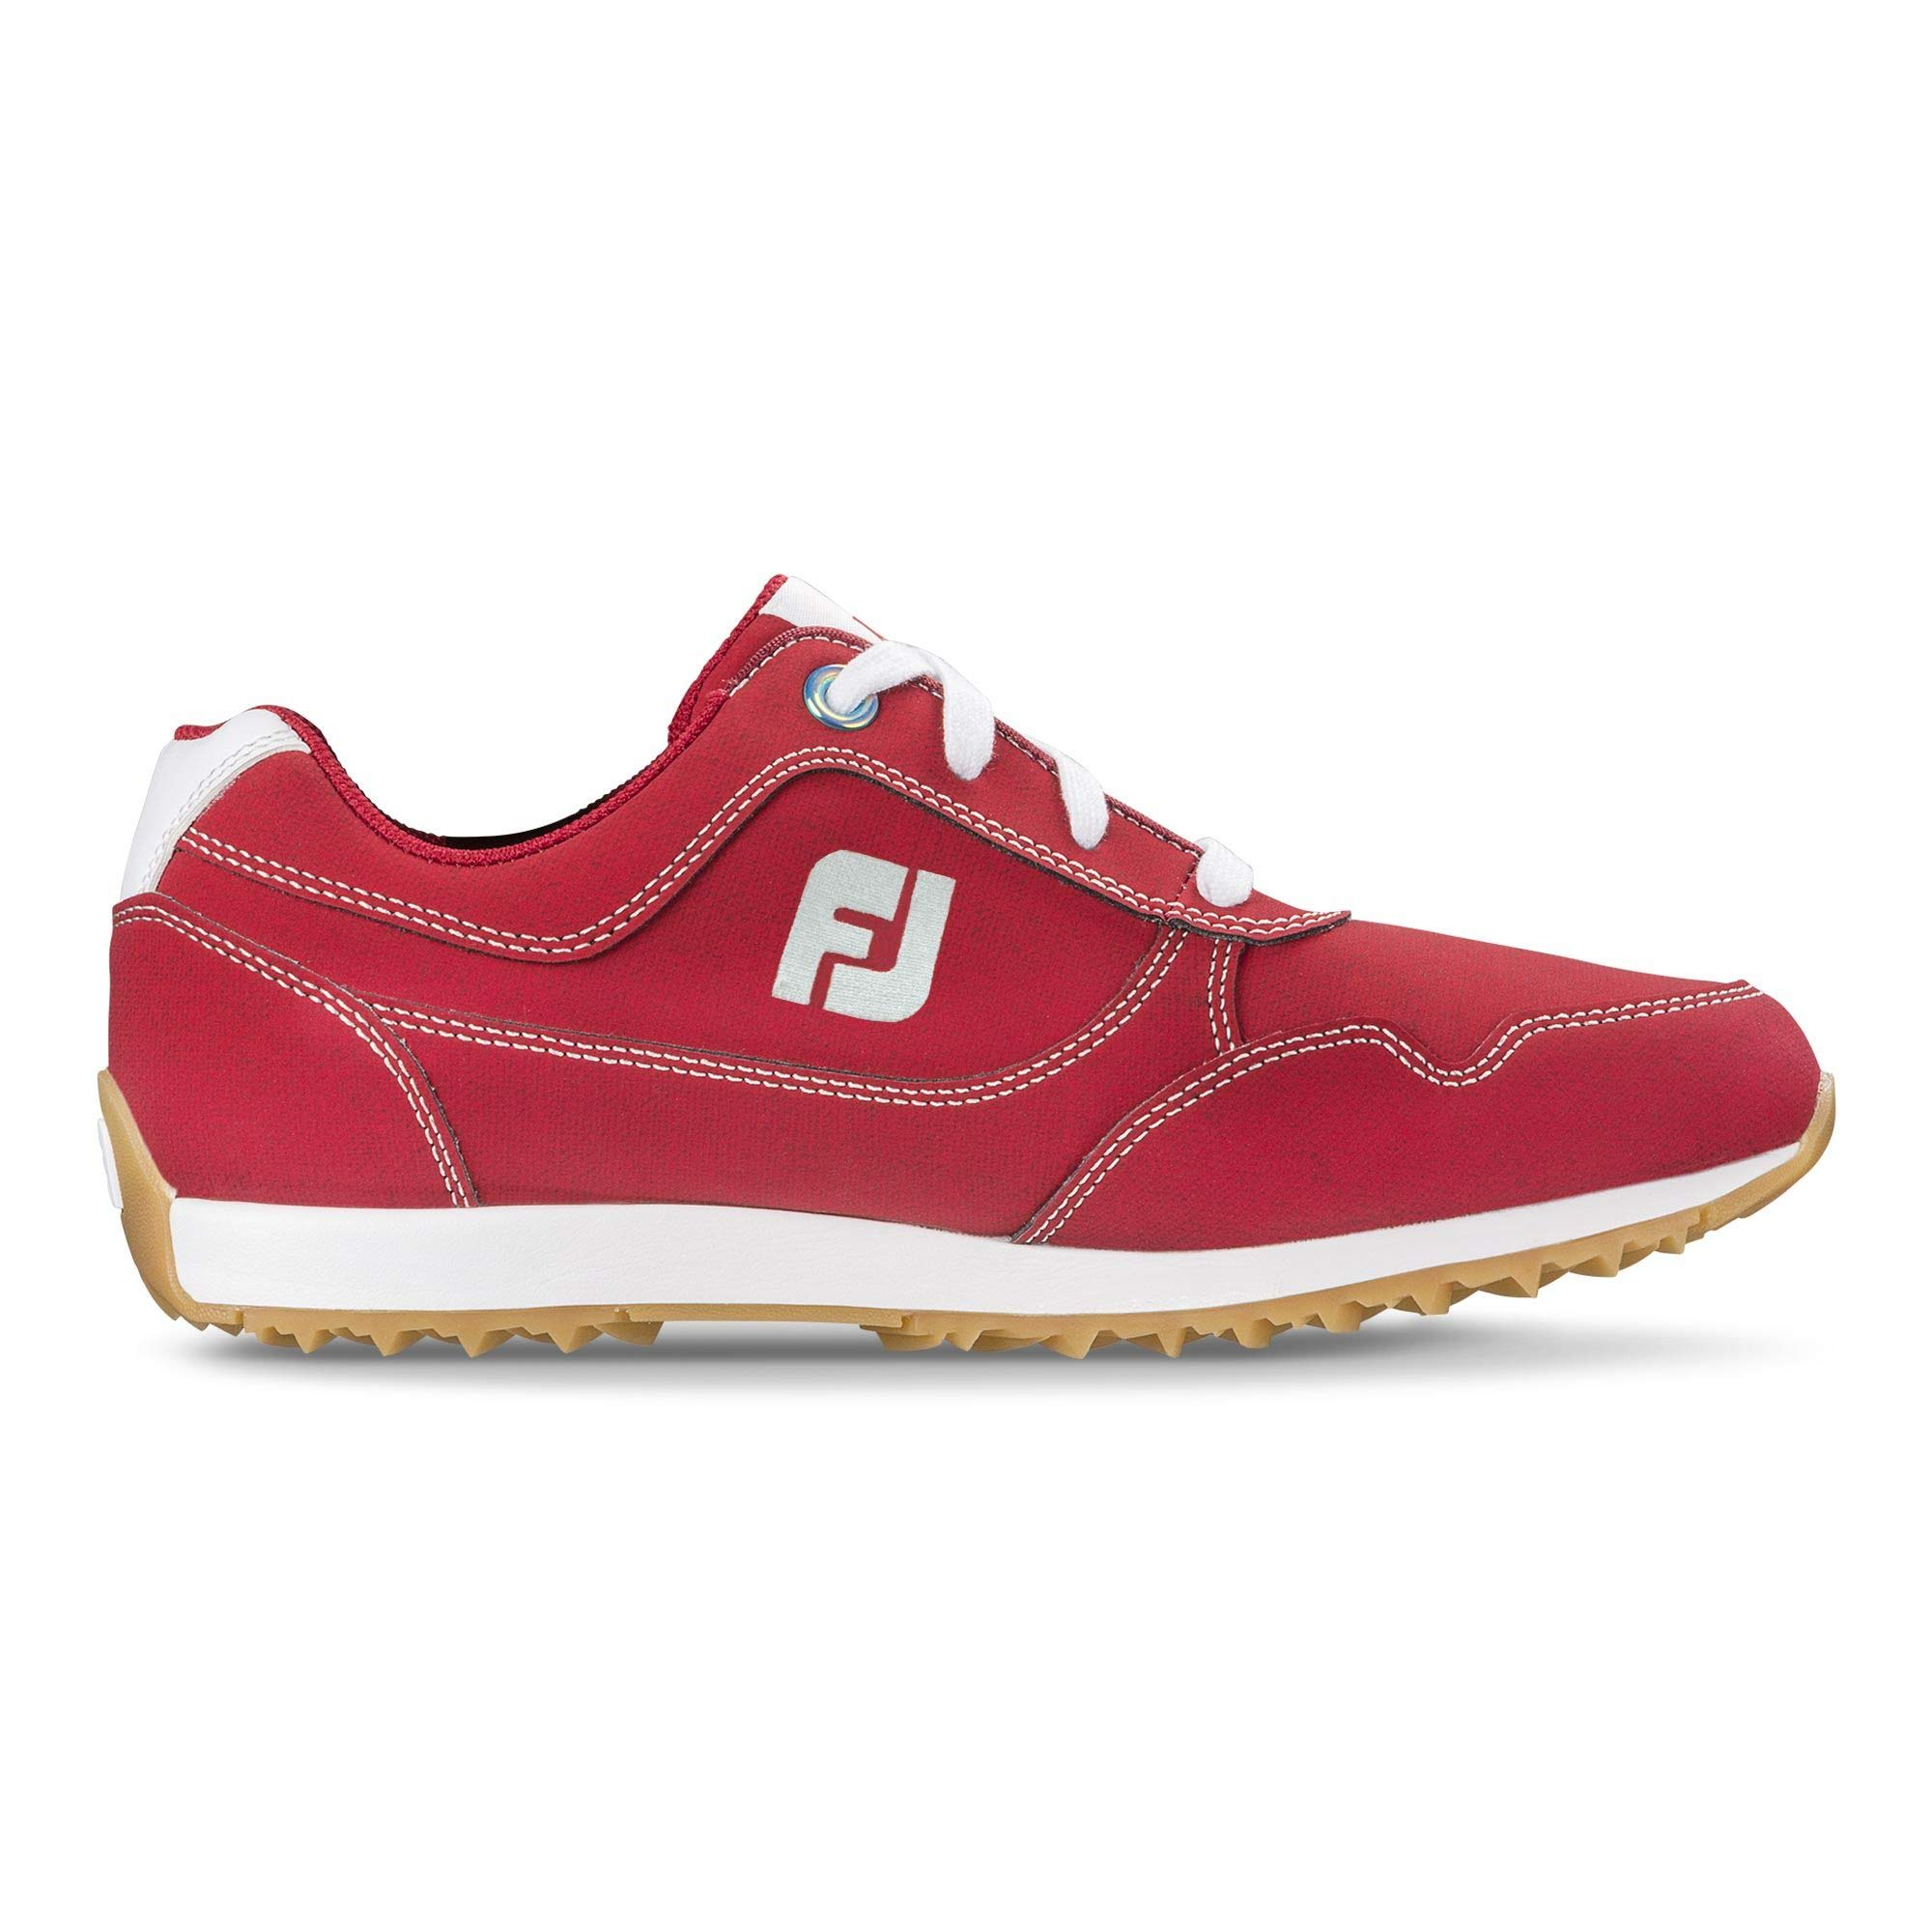 FootJoy Women's Sport Retro Golf Shoes Red 6.5 M US by FootJoy